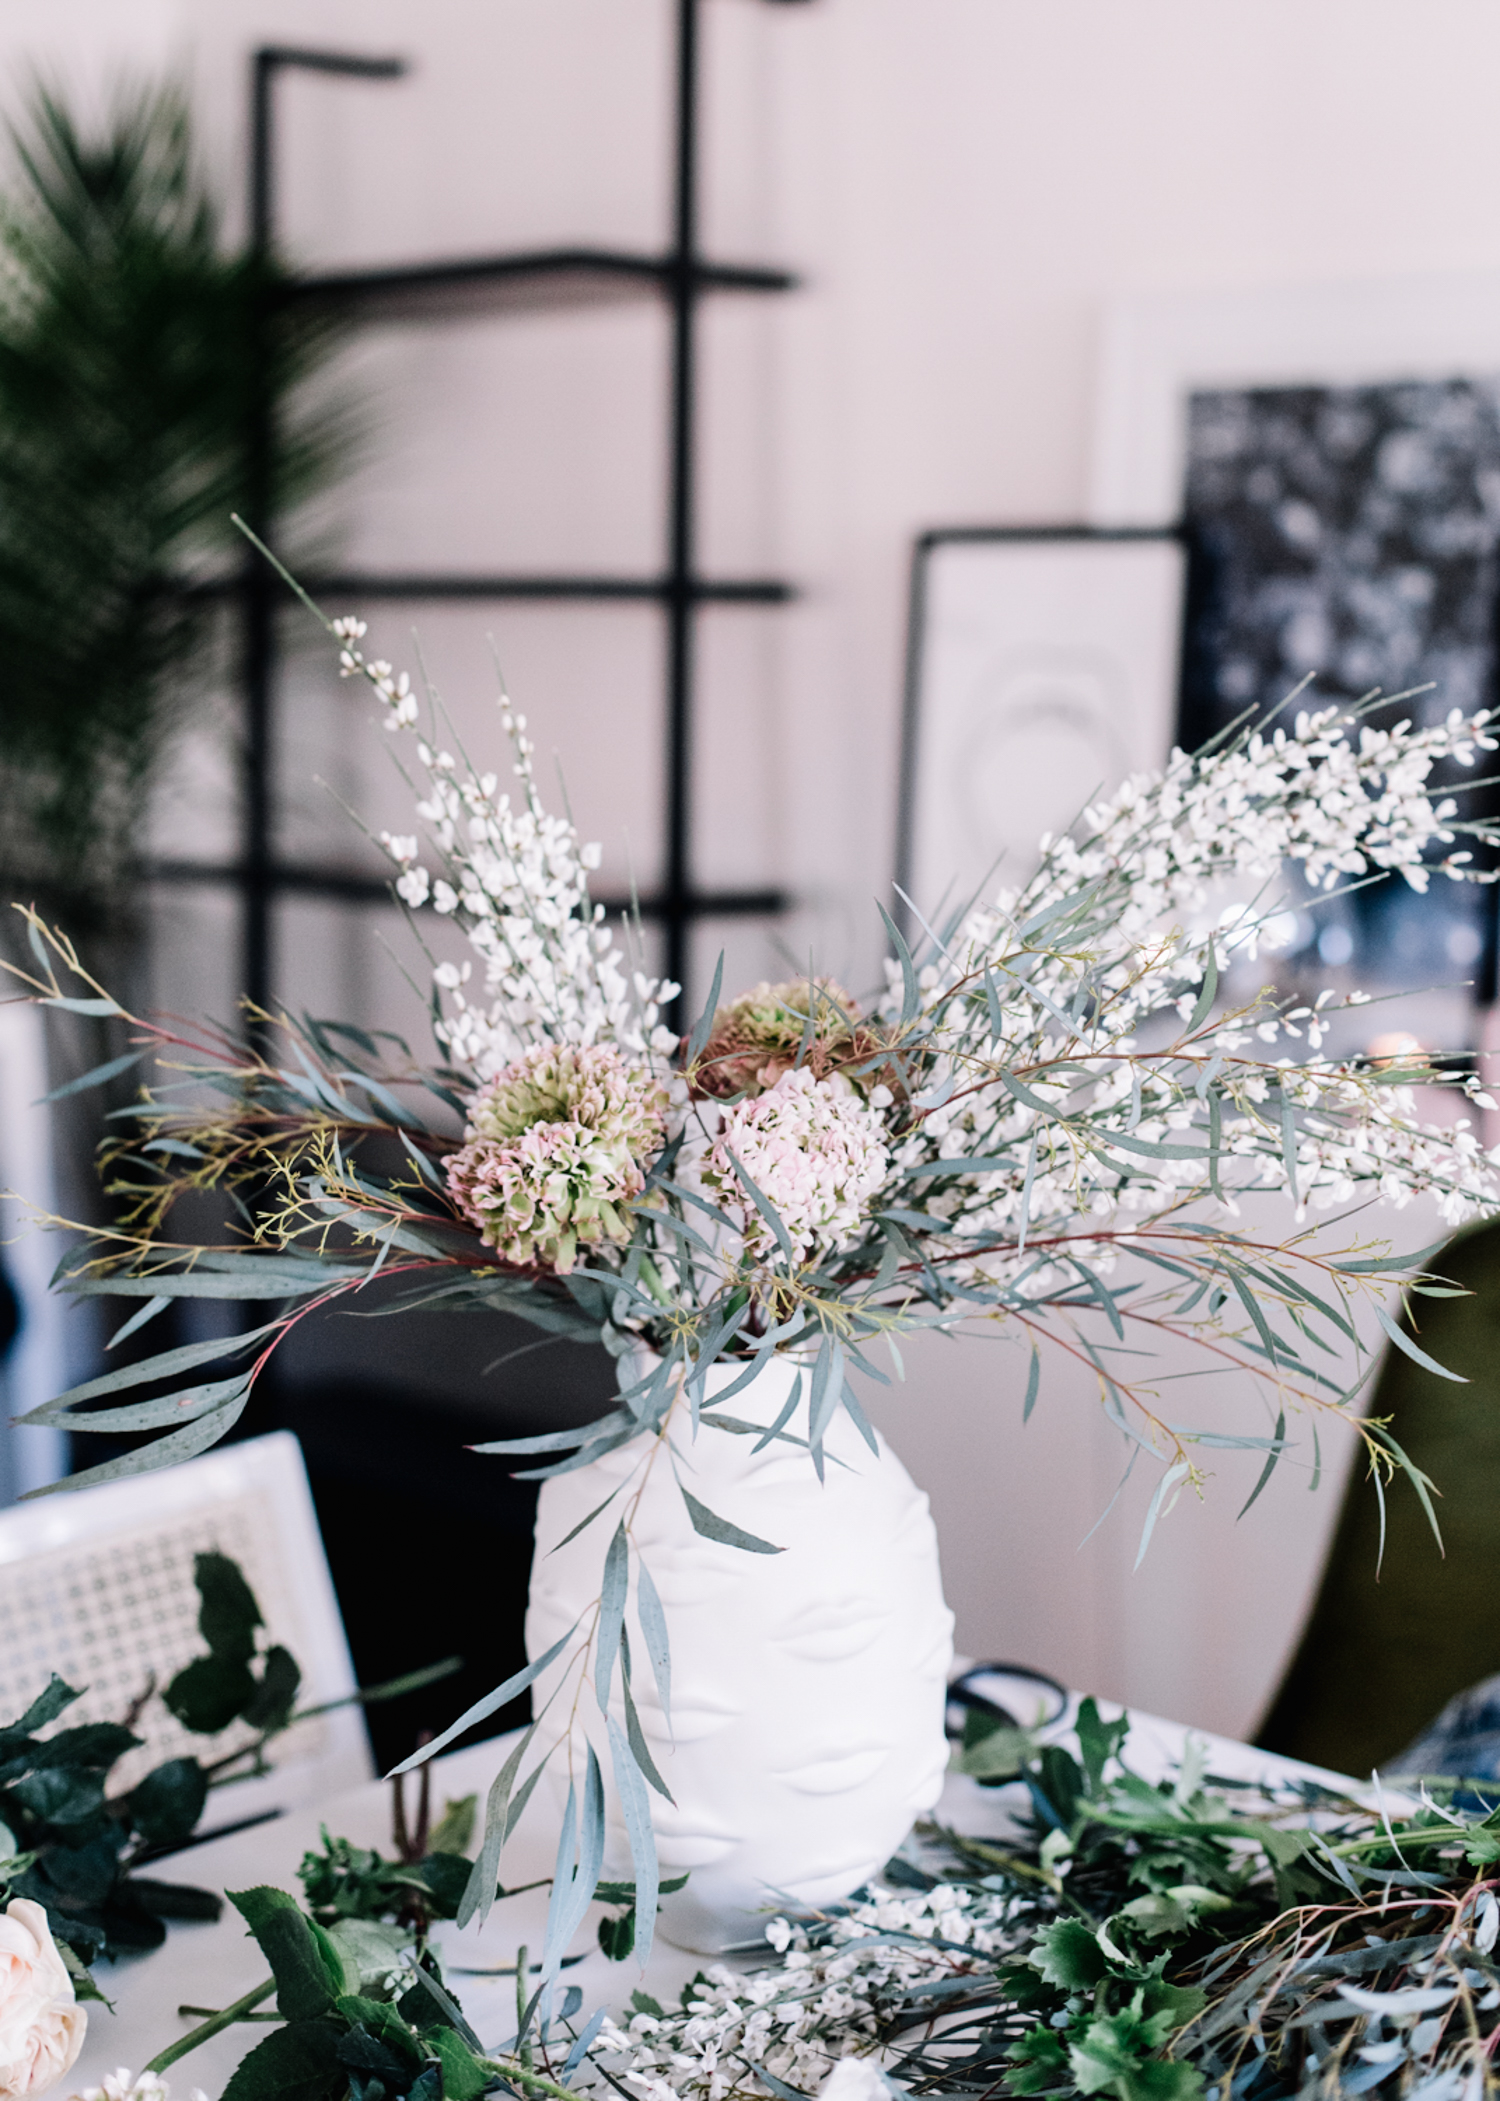 DIY Flower Arrangement | A Fabulous Fete